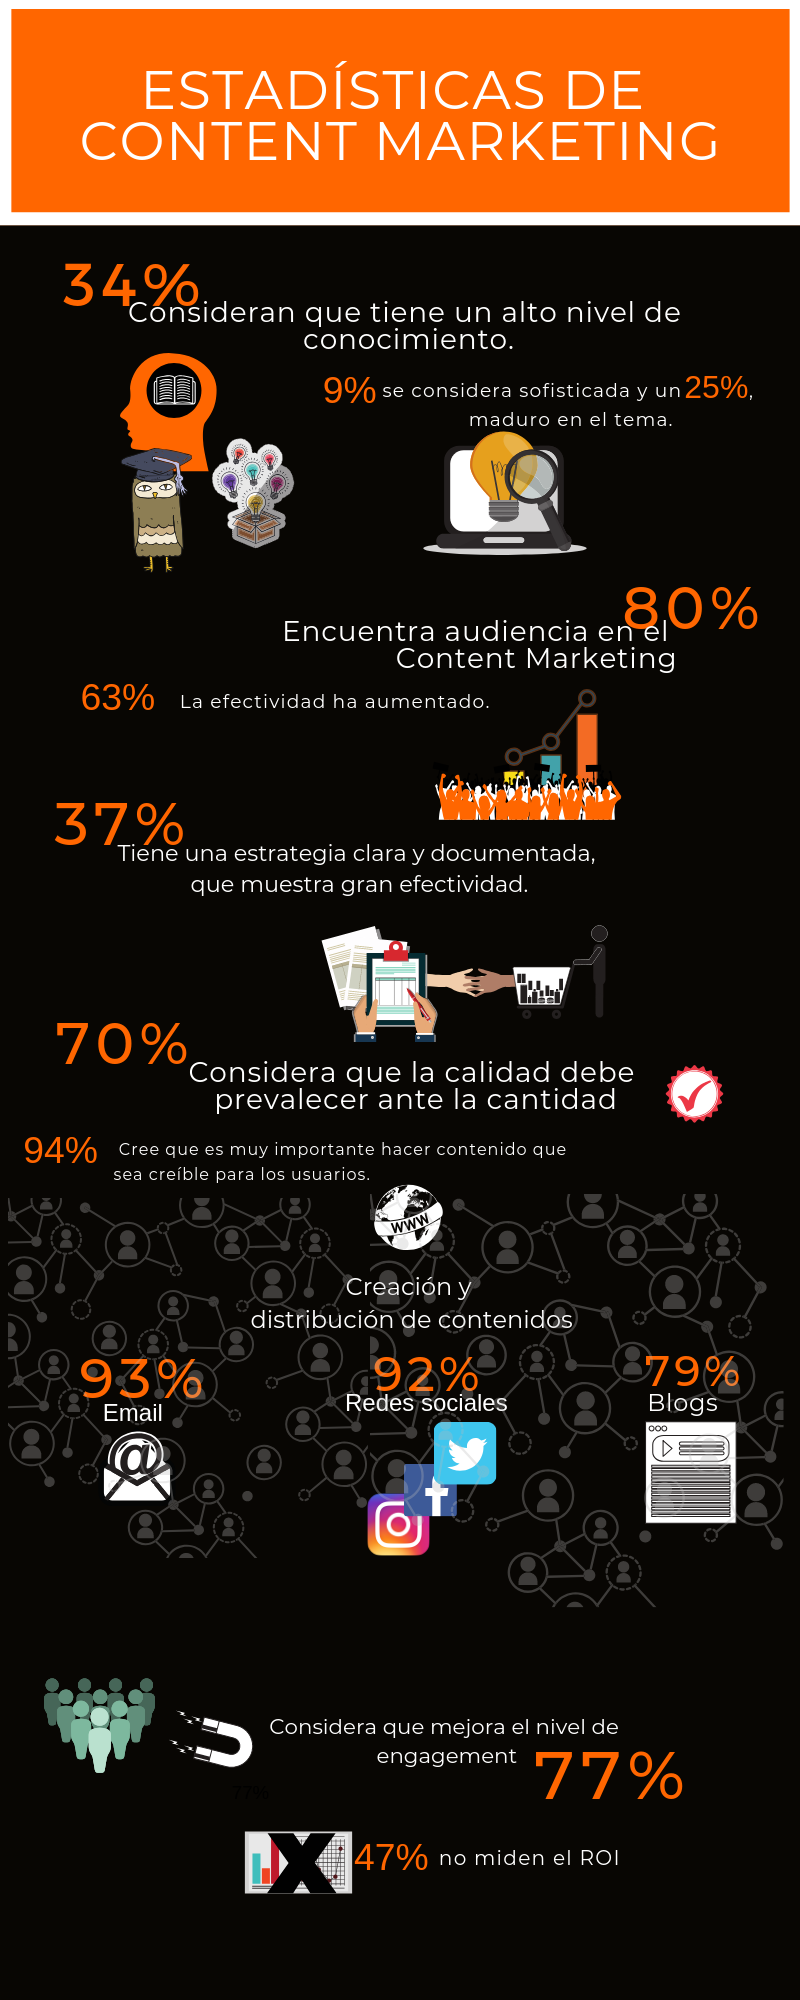 content-marketing-estadisticas